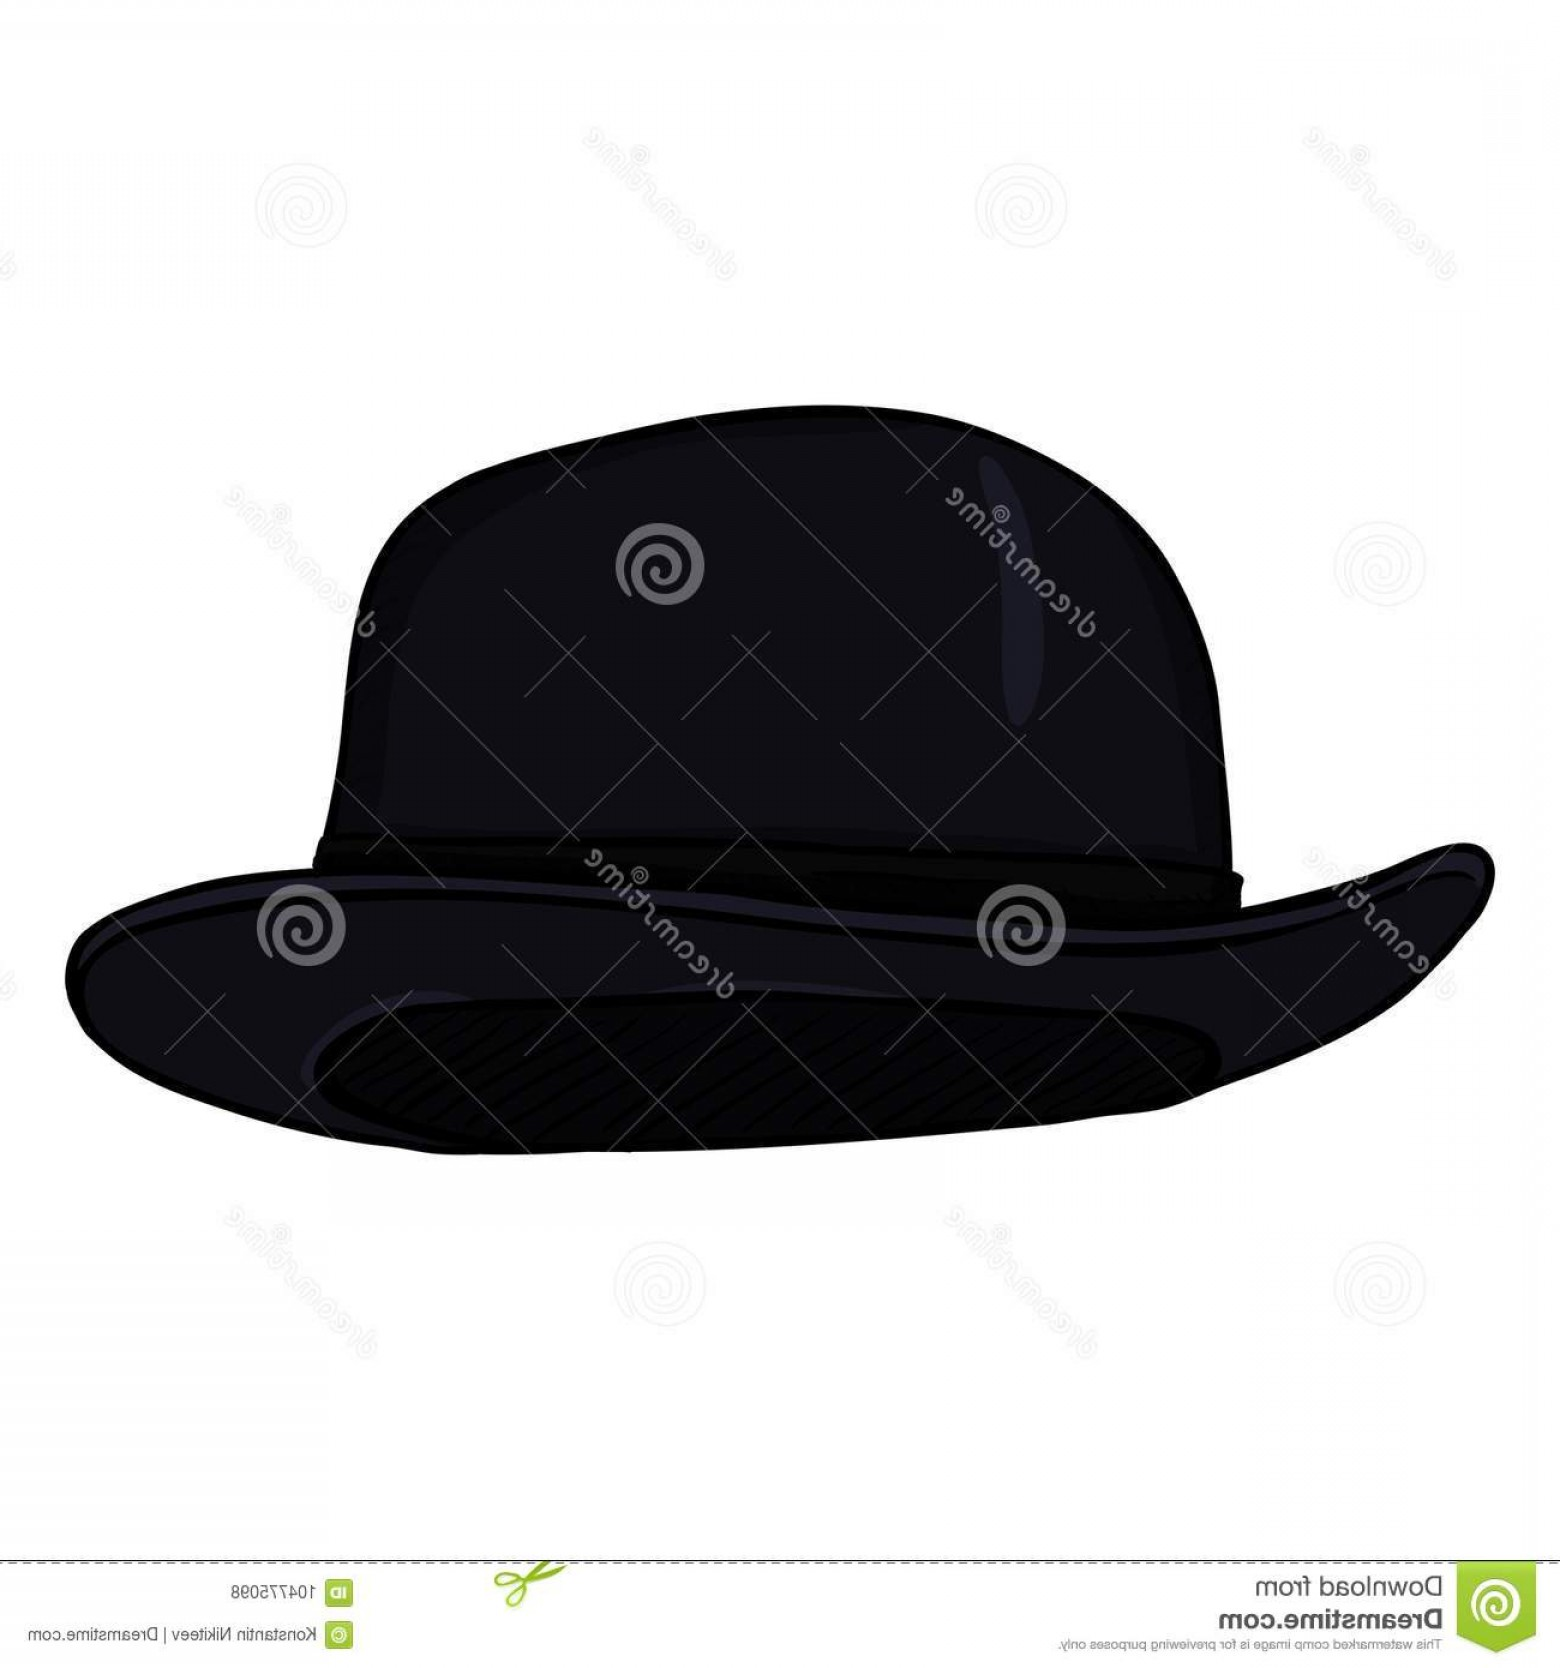 Bowler Hat Vector: Vector Single Cartoon Black Color Bowler Hat Image